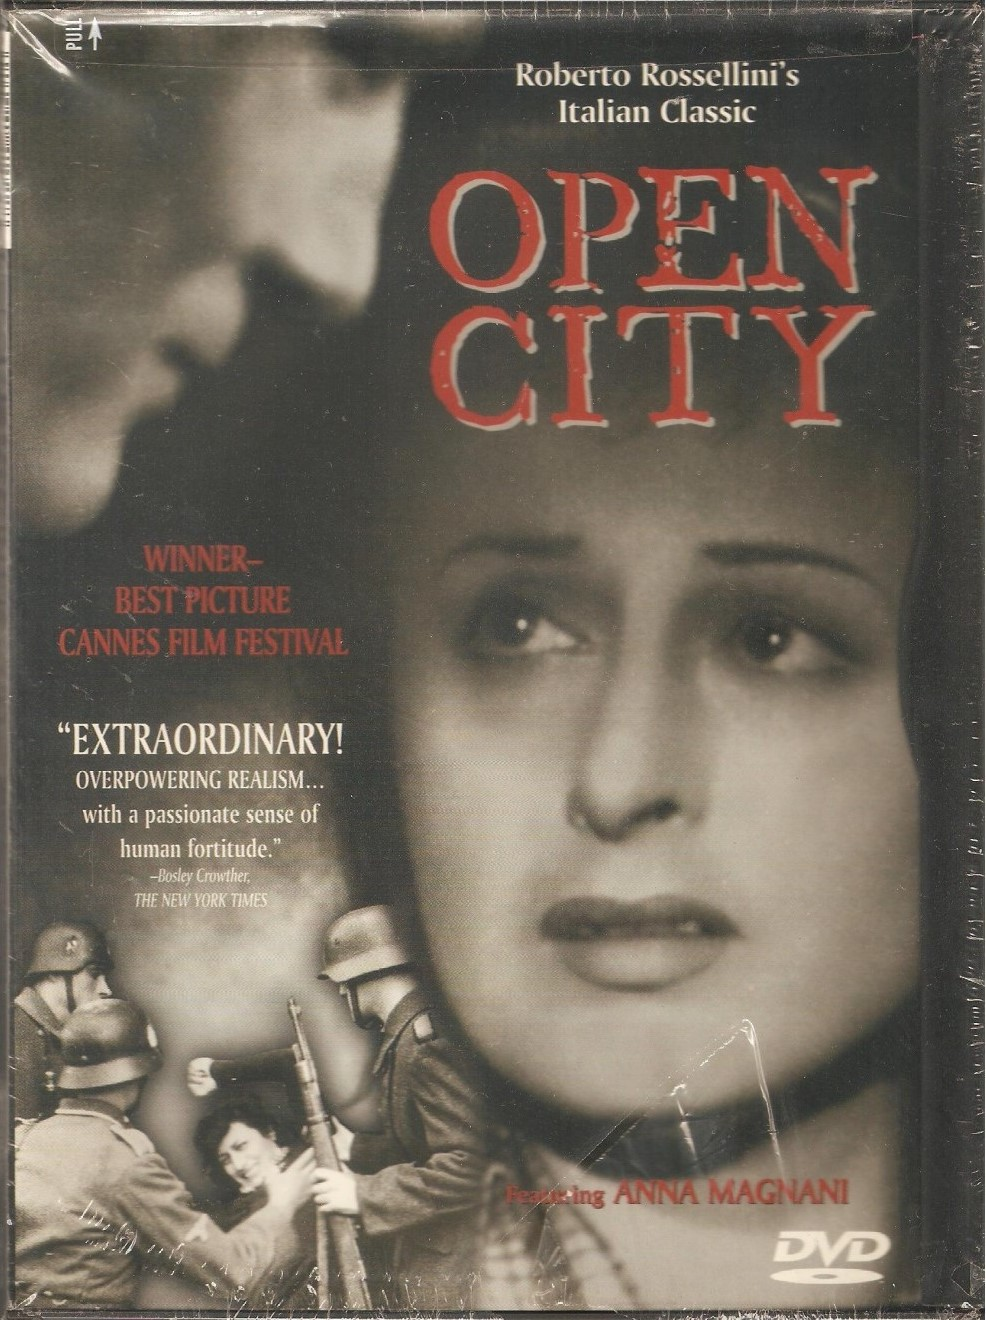 Selected movies, Open City, 1946, first Cannes film festival, history of Cannes, Film or fashion